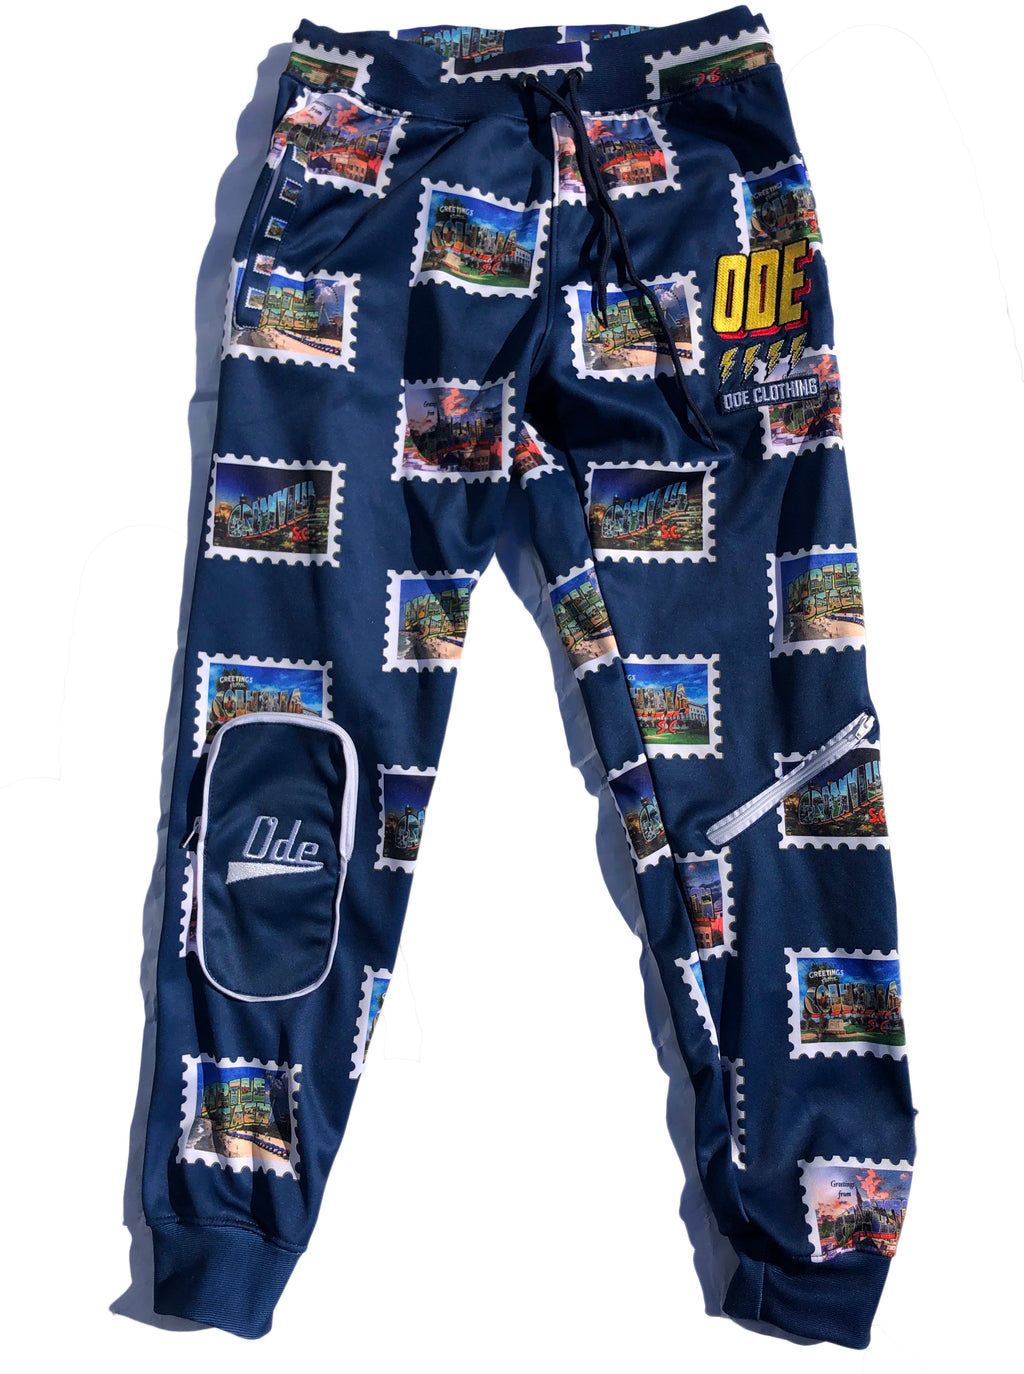 The Ode 10 Year Anniversary South Carolina  Stamp Jogger Pants